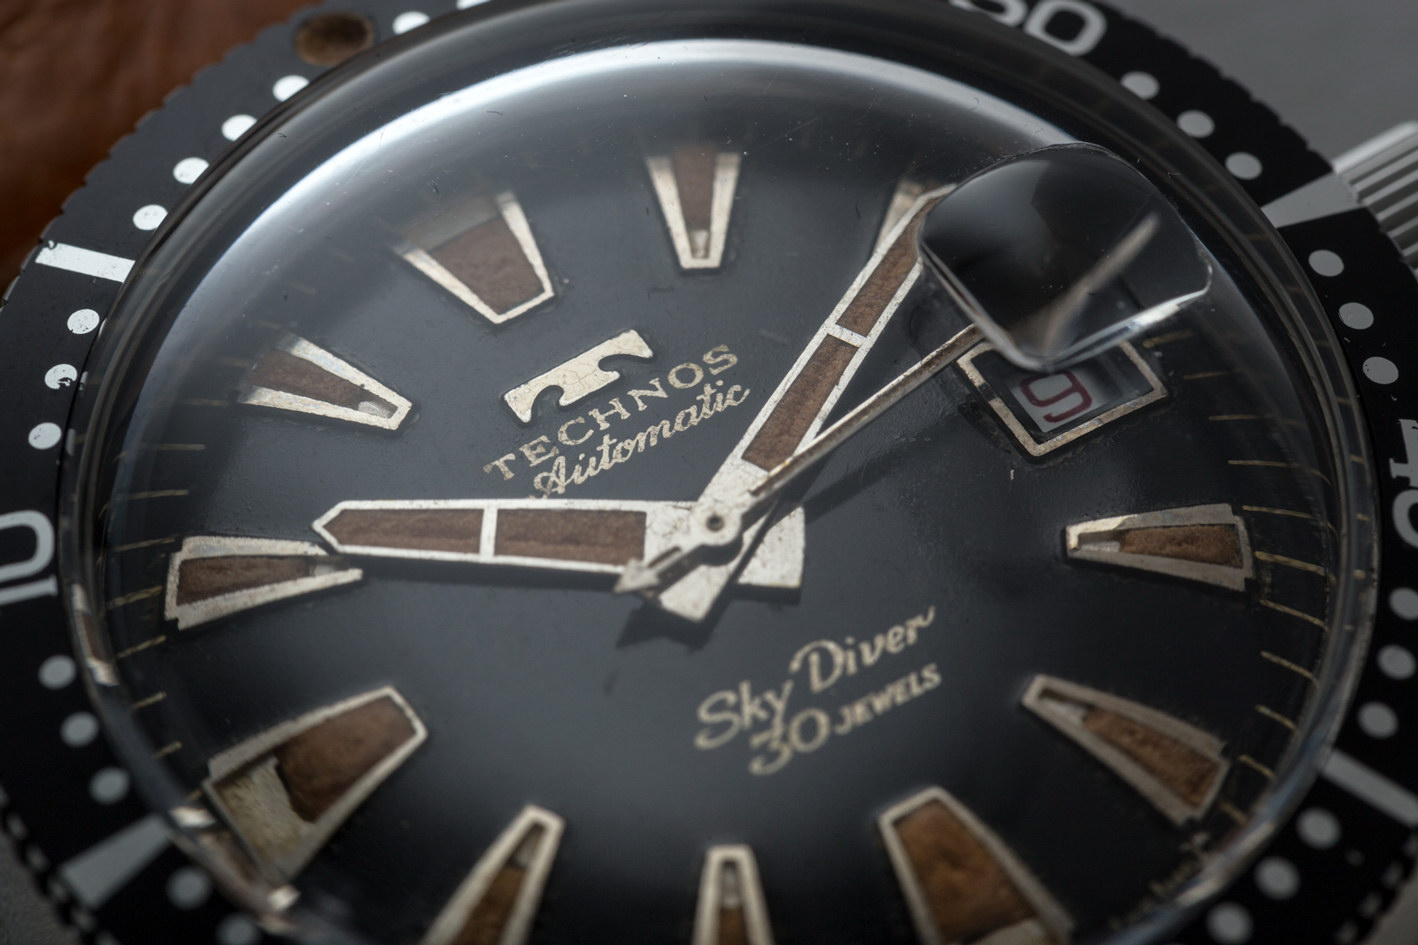 Technos Vintage Sky-Diver | Shuck the Oyster Vintage Watches